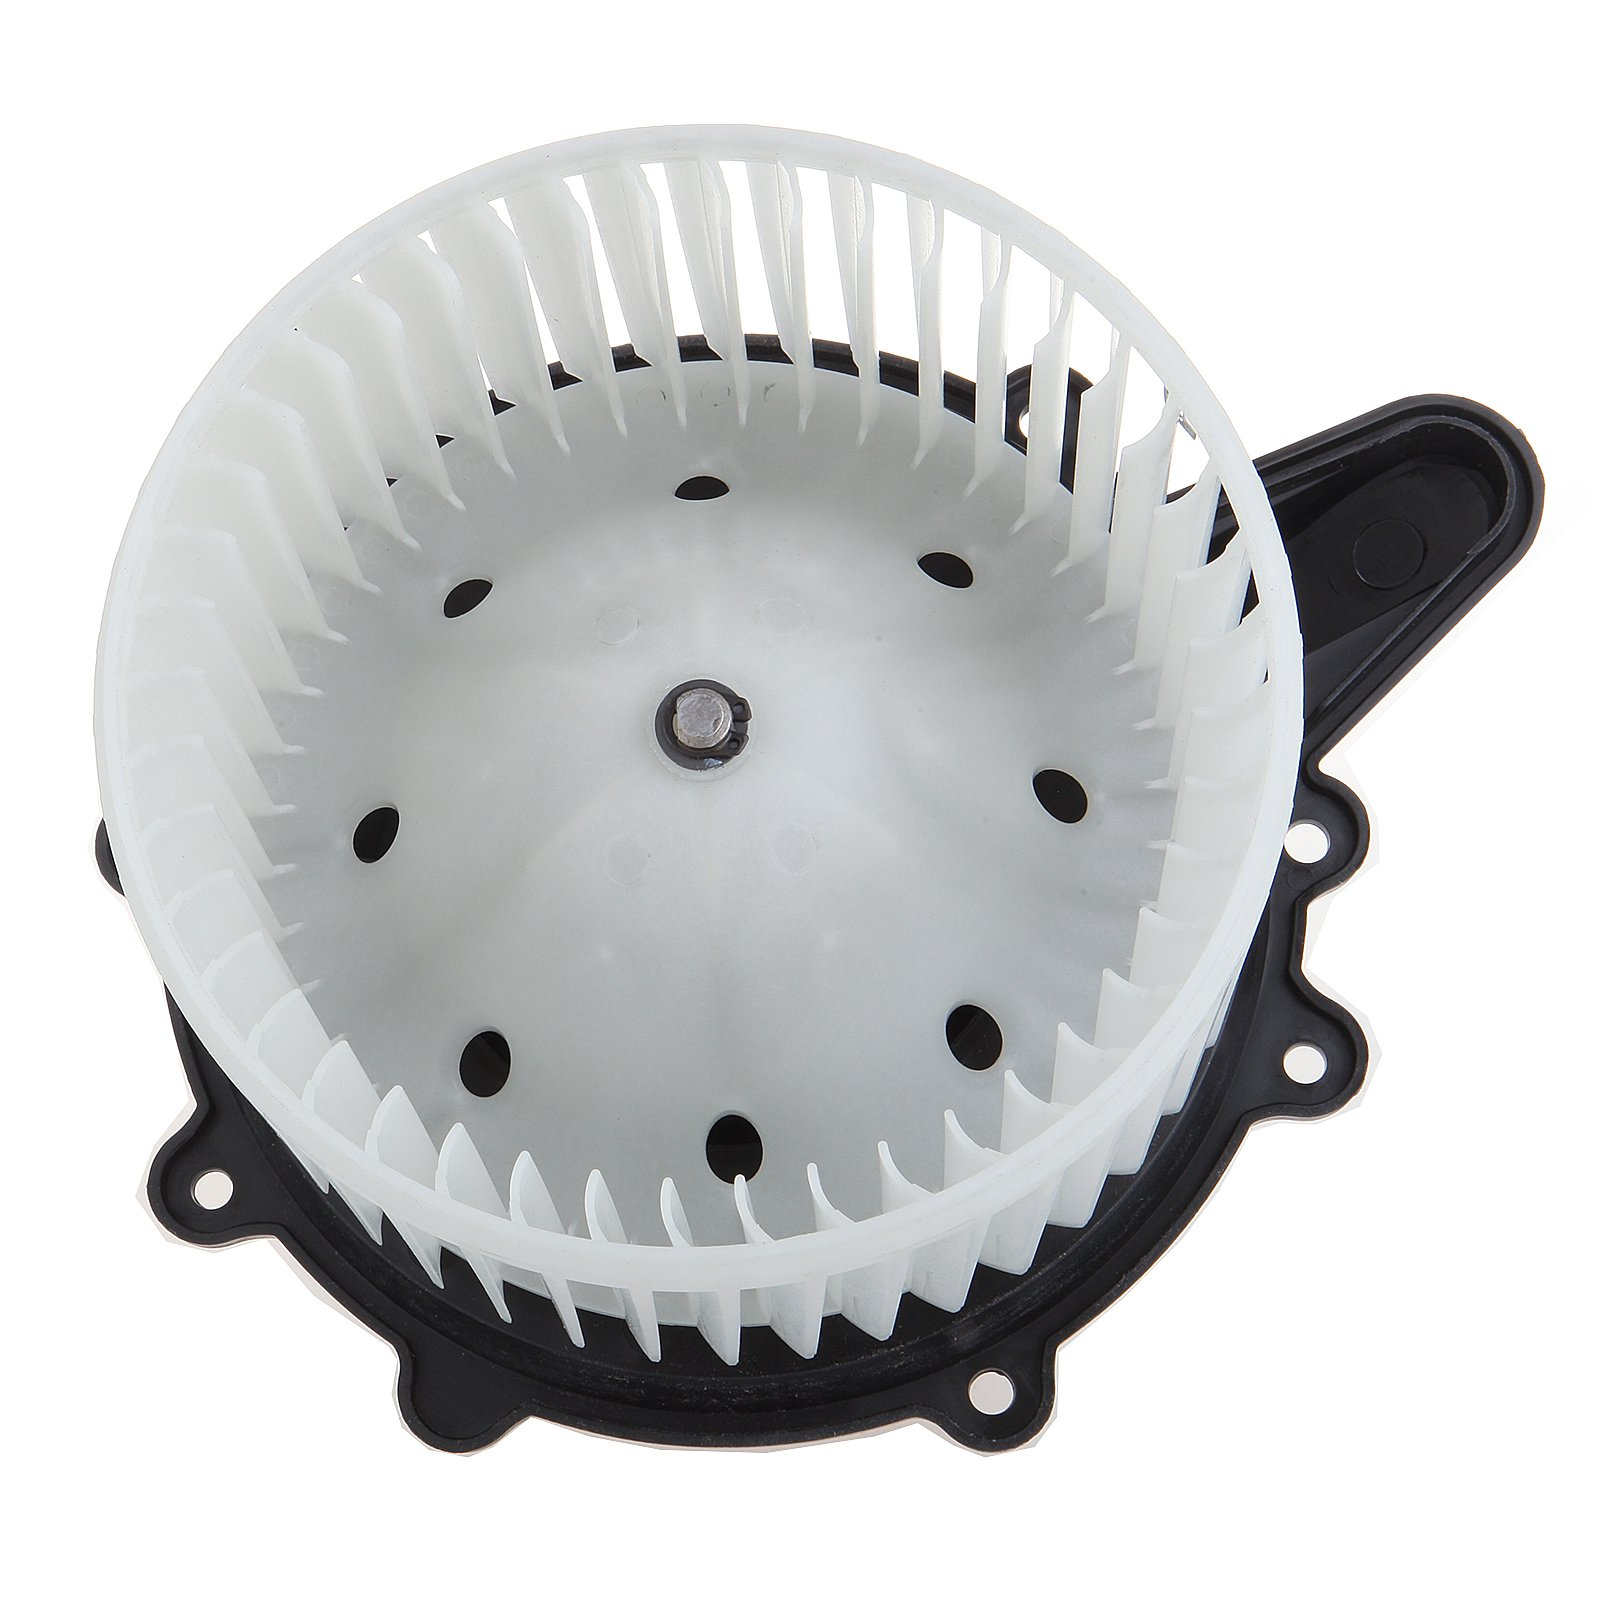 HVAC Plastic Heater Blower Motor ABS w/Fan Cage ECCPP for 1997-2002 Ford Expedition /2002-2005 Ford Explorer /1997-2003 Ford F-150/2004 Ford F-150 Heritage by ECCPP